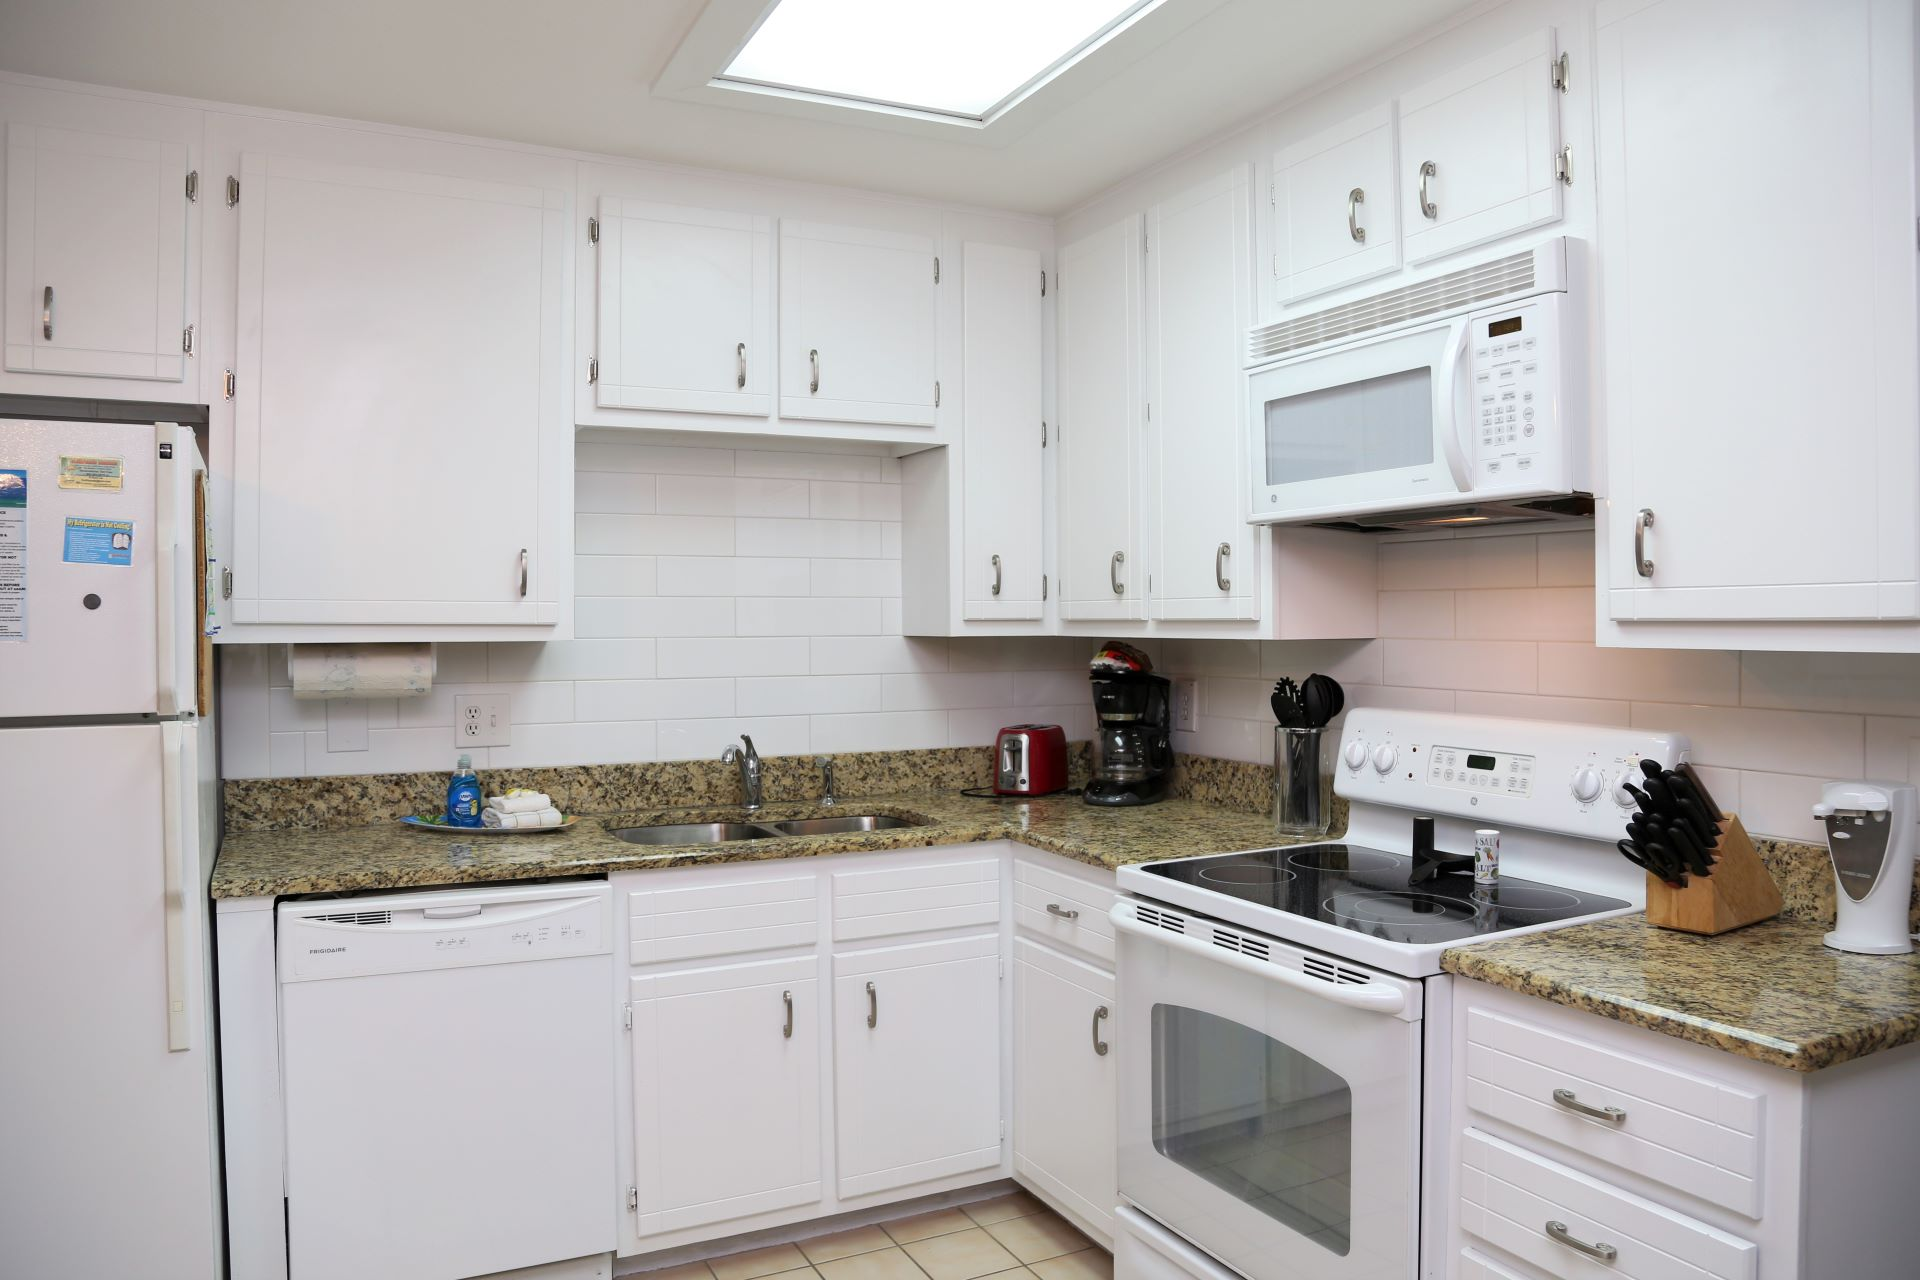 The updated kitchen includes over the counter microwave, mod